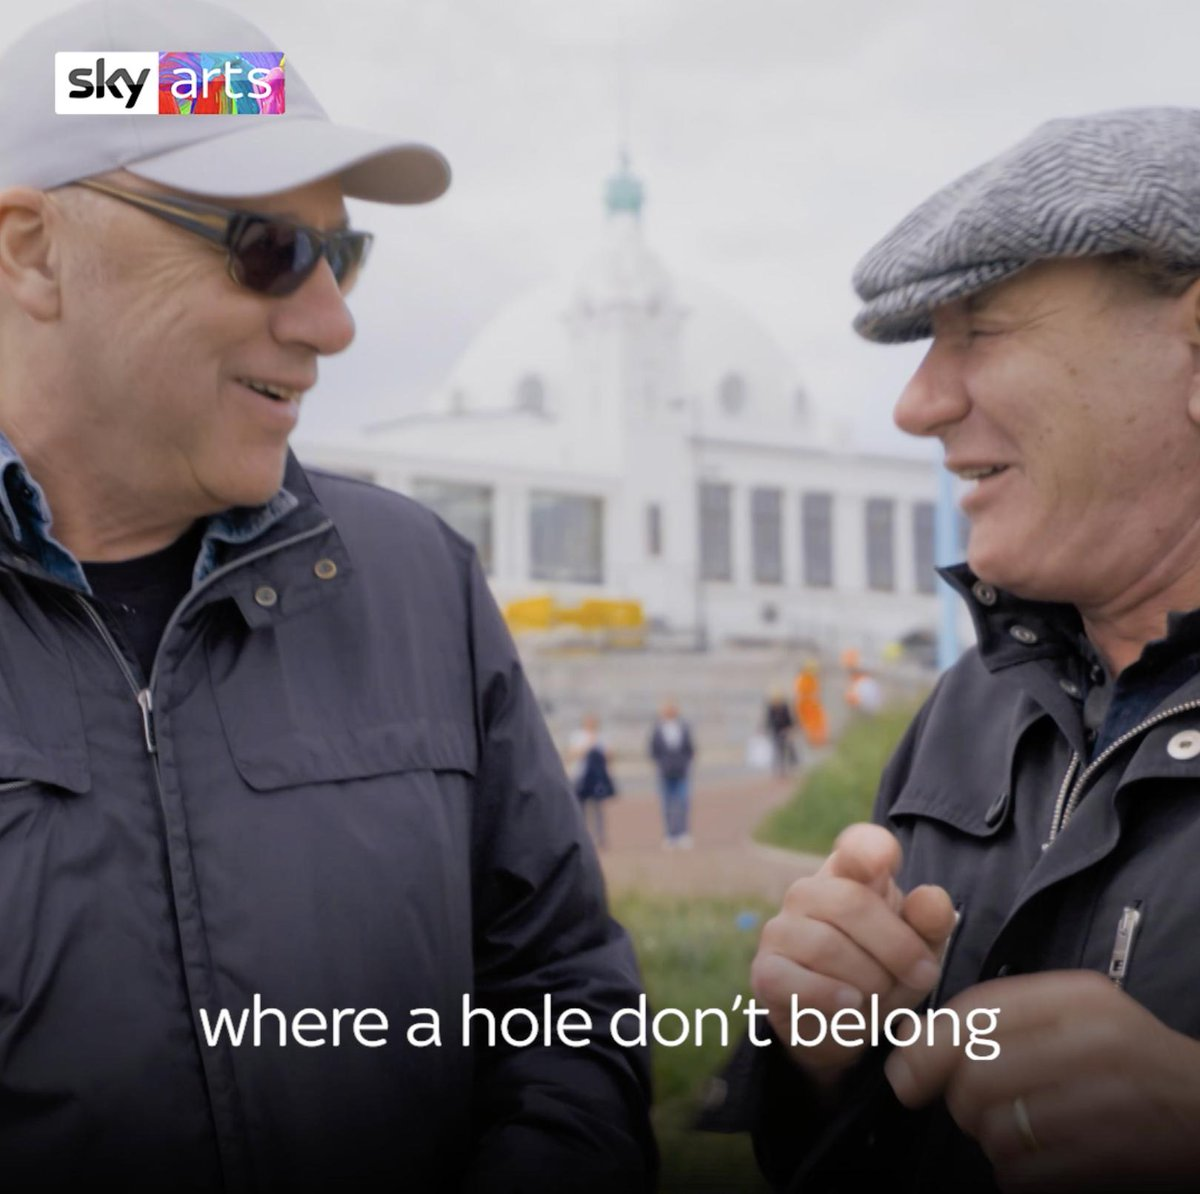 Who wouldn't want to hear @MarkKnopfler and @BrianJohnson sing 'The hole in the ground' by Bernard Cribbins. Brian returns to his hometown of Newcastle in A life on the road. We also hear Mark's inspiration for 'Sultans of Swing' 😂